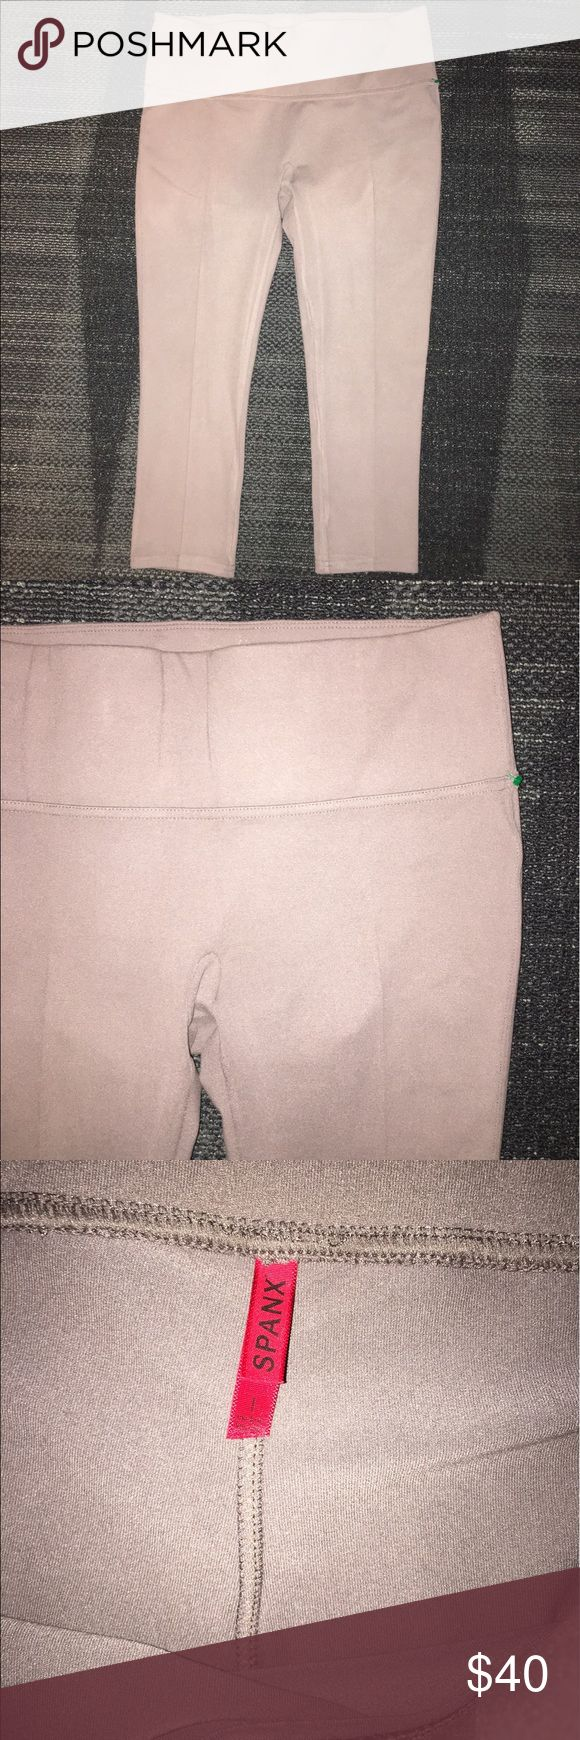 Brown spanx pants In good condition. SPANX Pants